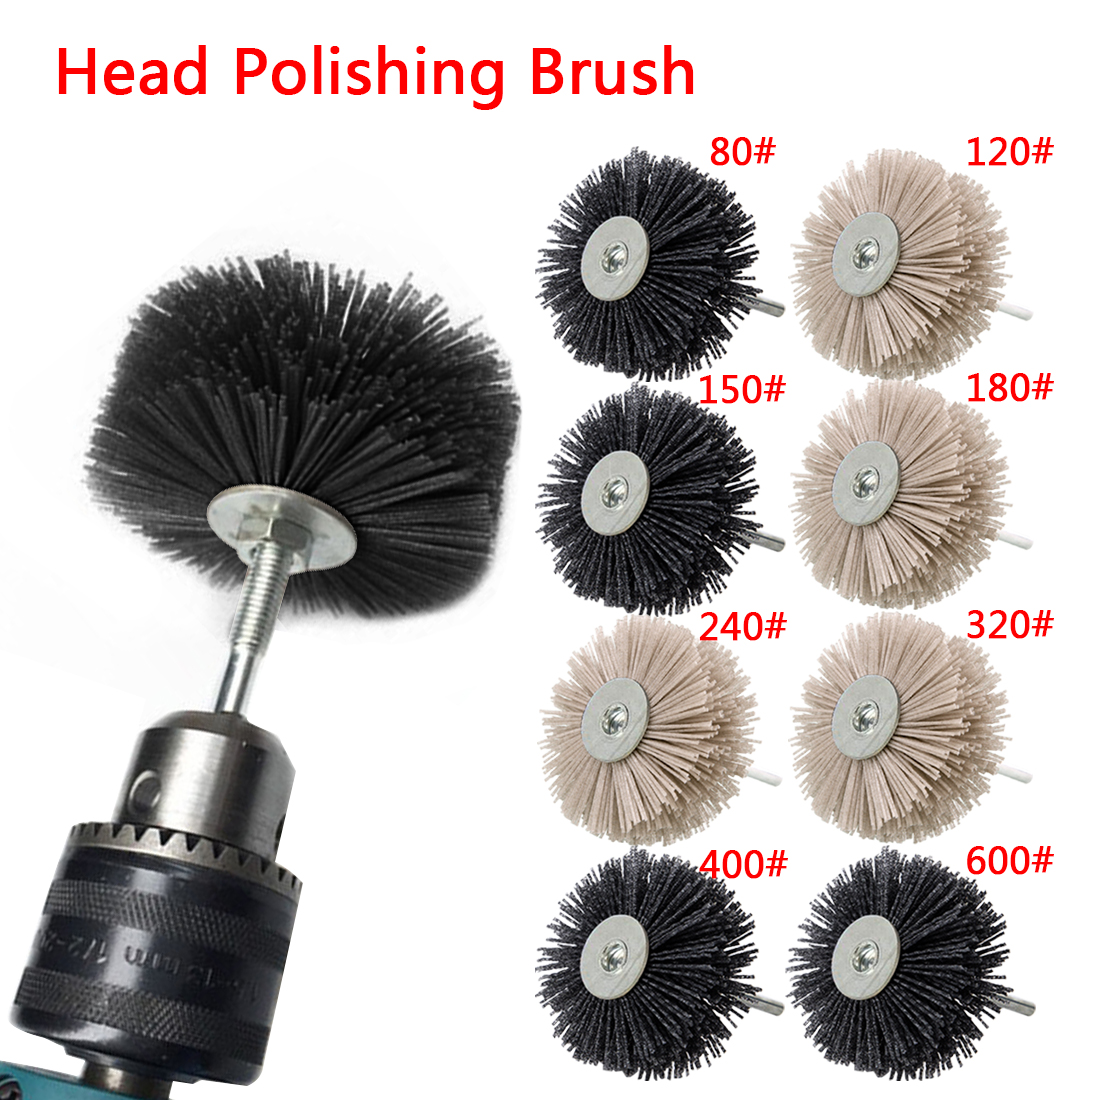 Abrasives 100mm Nylon Wheel Brush Abrasive Wire Grinding Polishing Brush Bench Grinder For Wood Furniture Metal